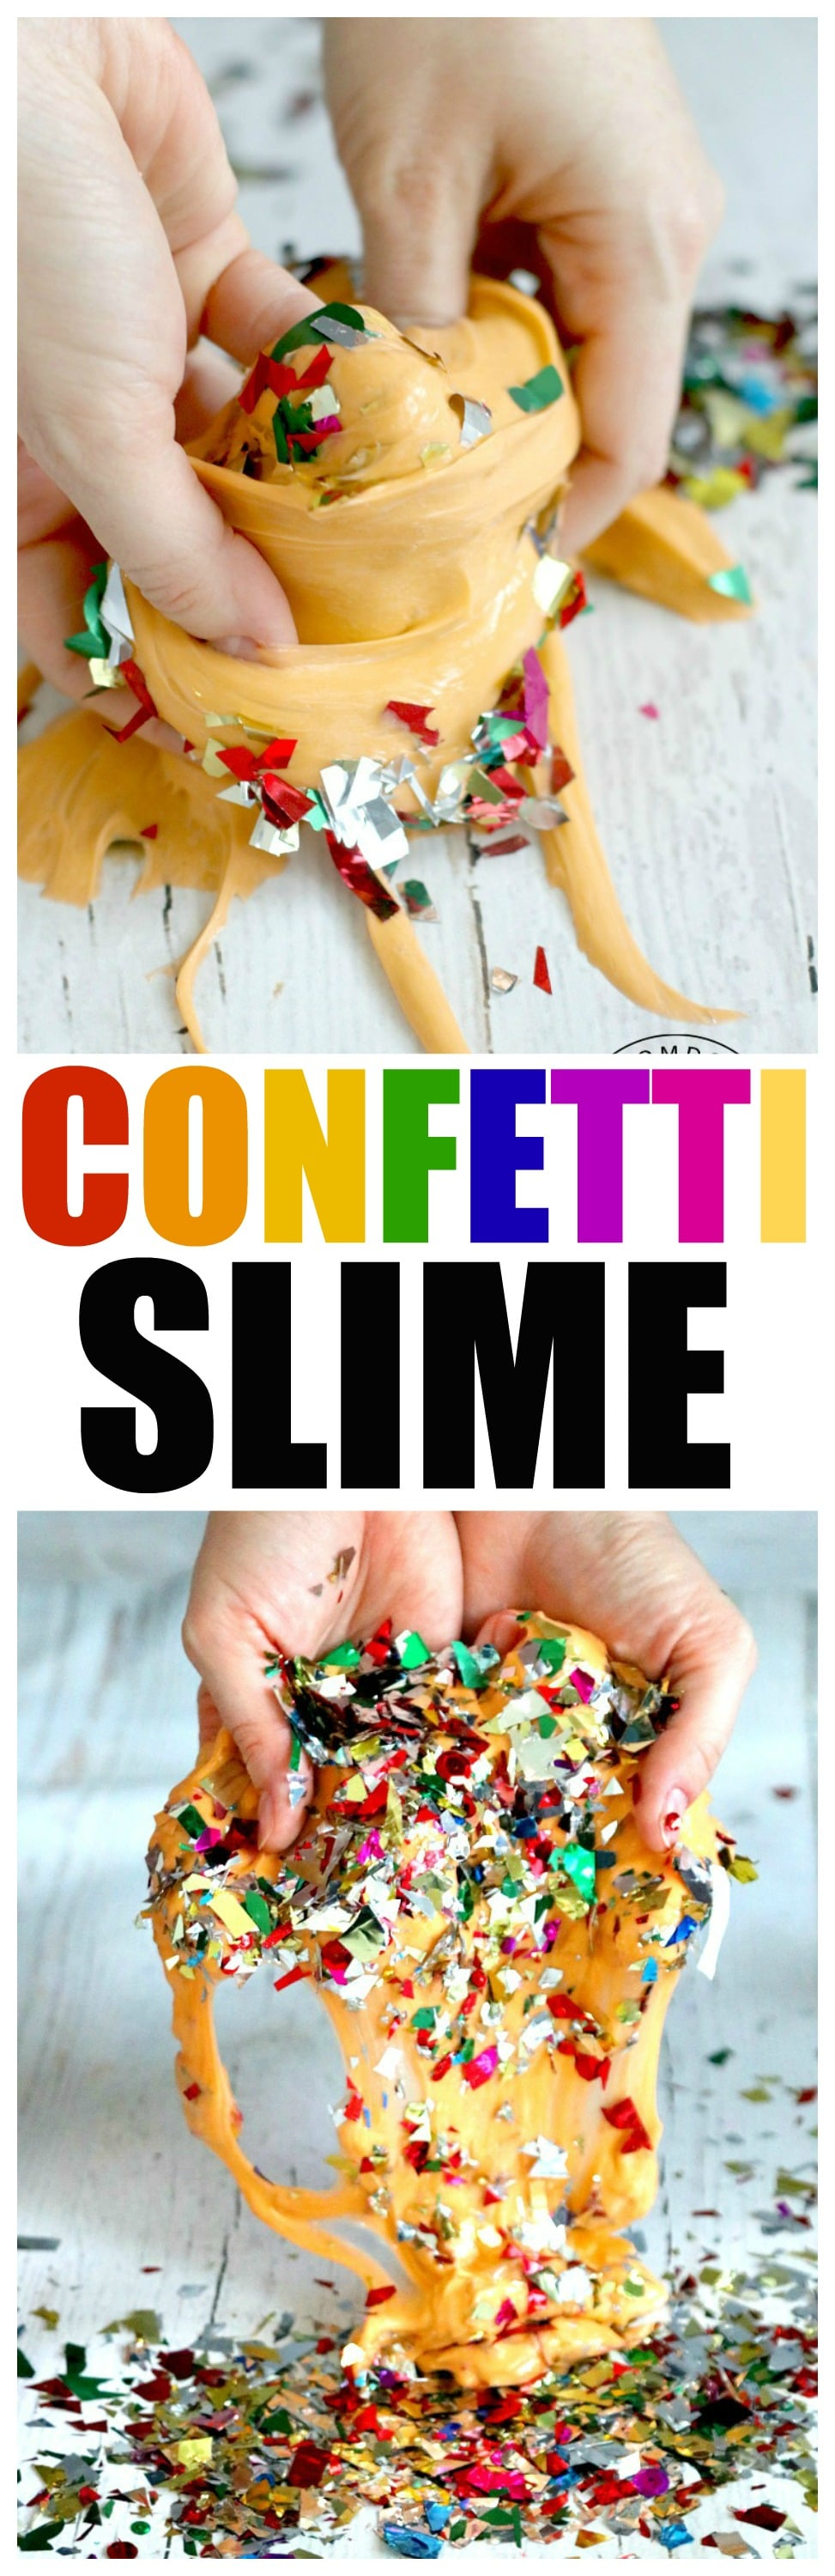 Confetti Slime, Homemade Slime recipe, sensory experiment perfect for birthday slime fun